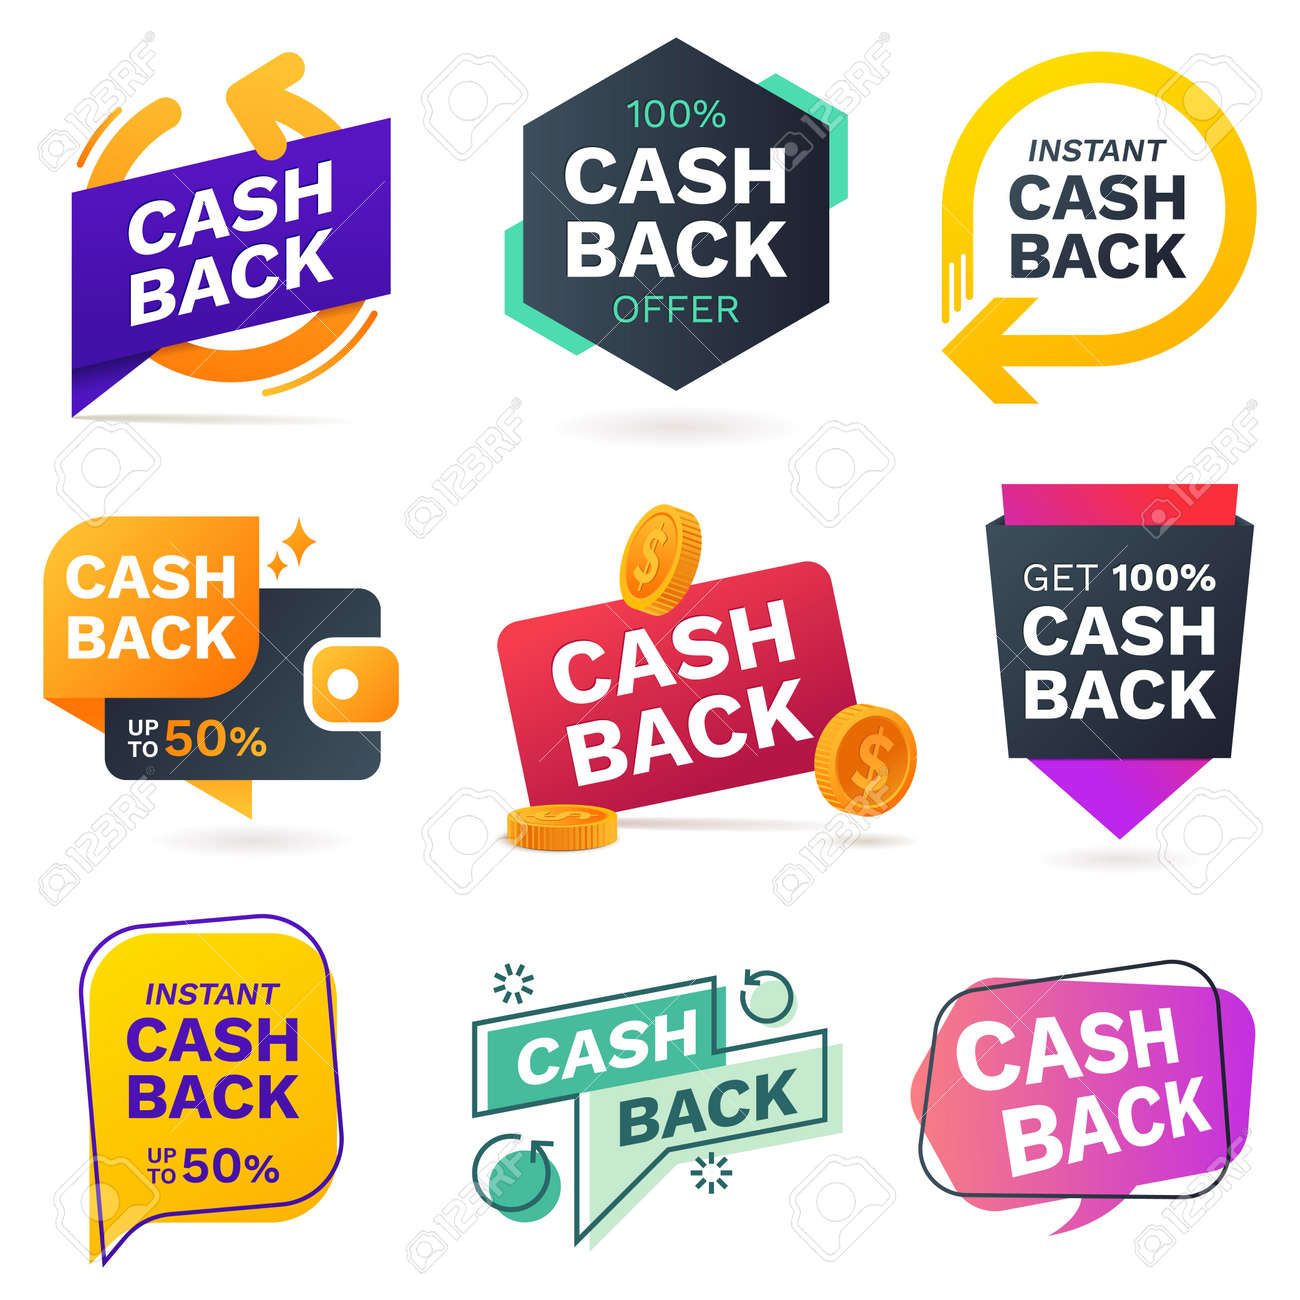 cash back icons set colorful cashback banner collection money royalty free cliparts vectors and stock illustration image 127618565 cash back icons set colorful cashback banner collection money